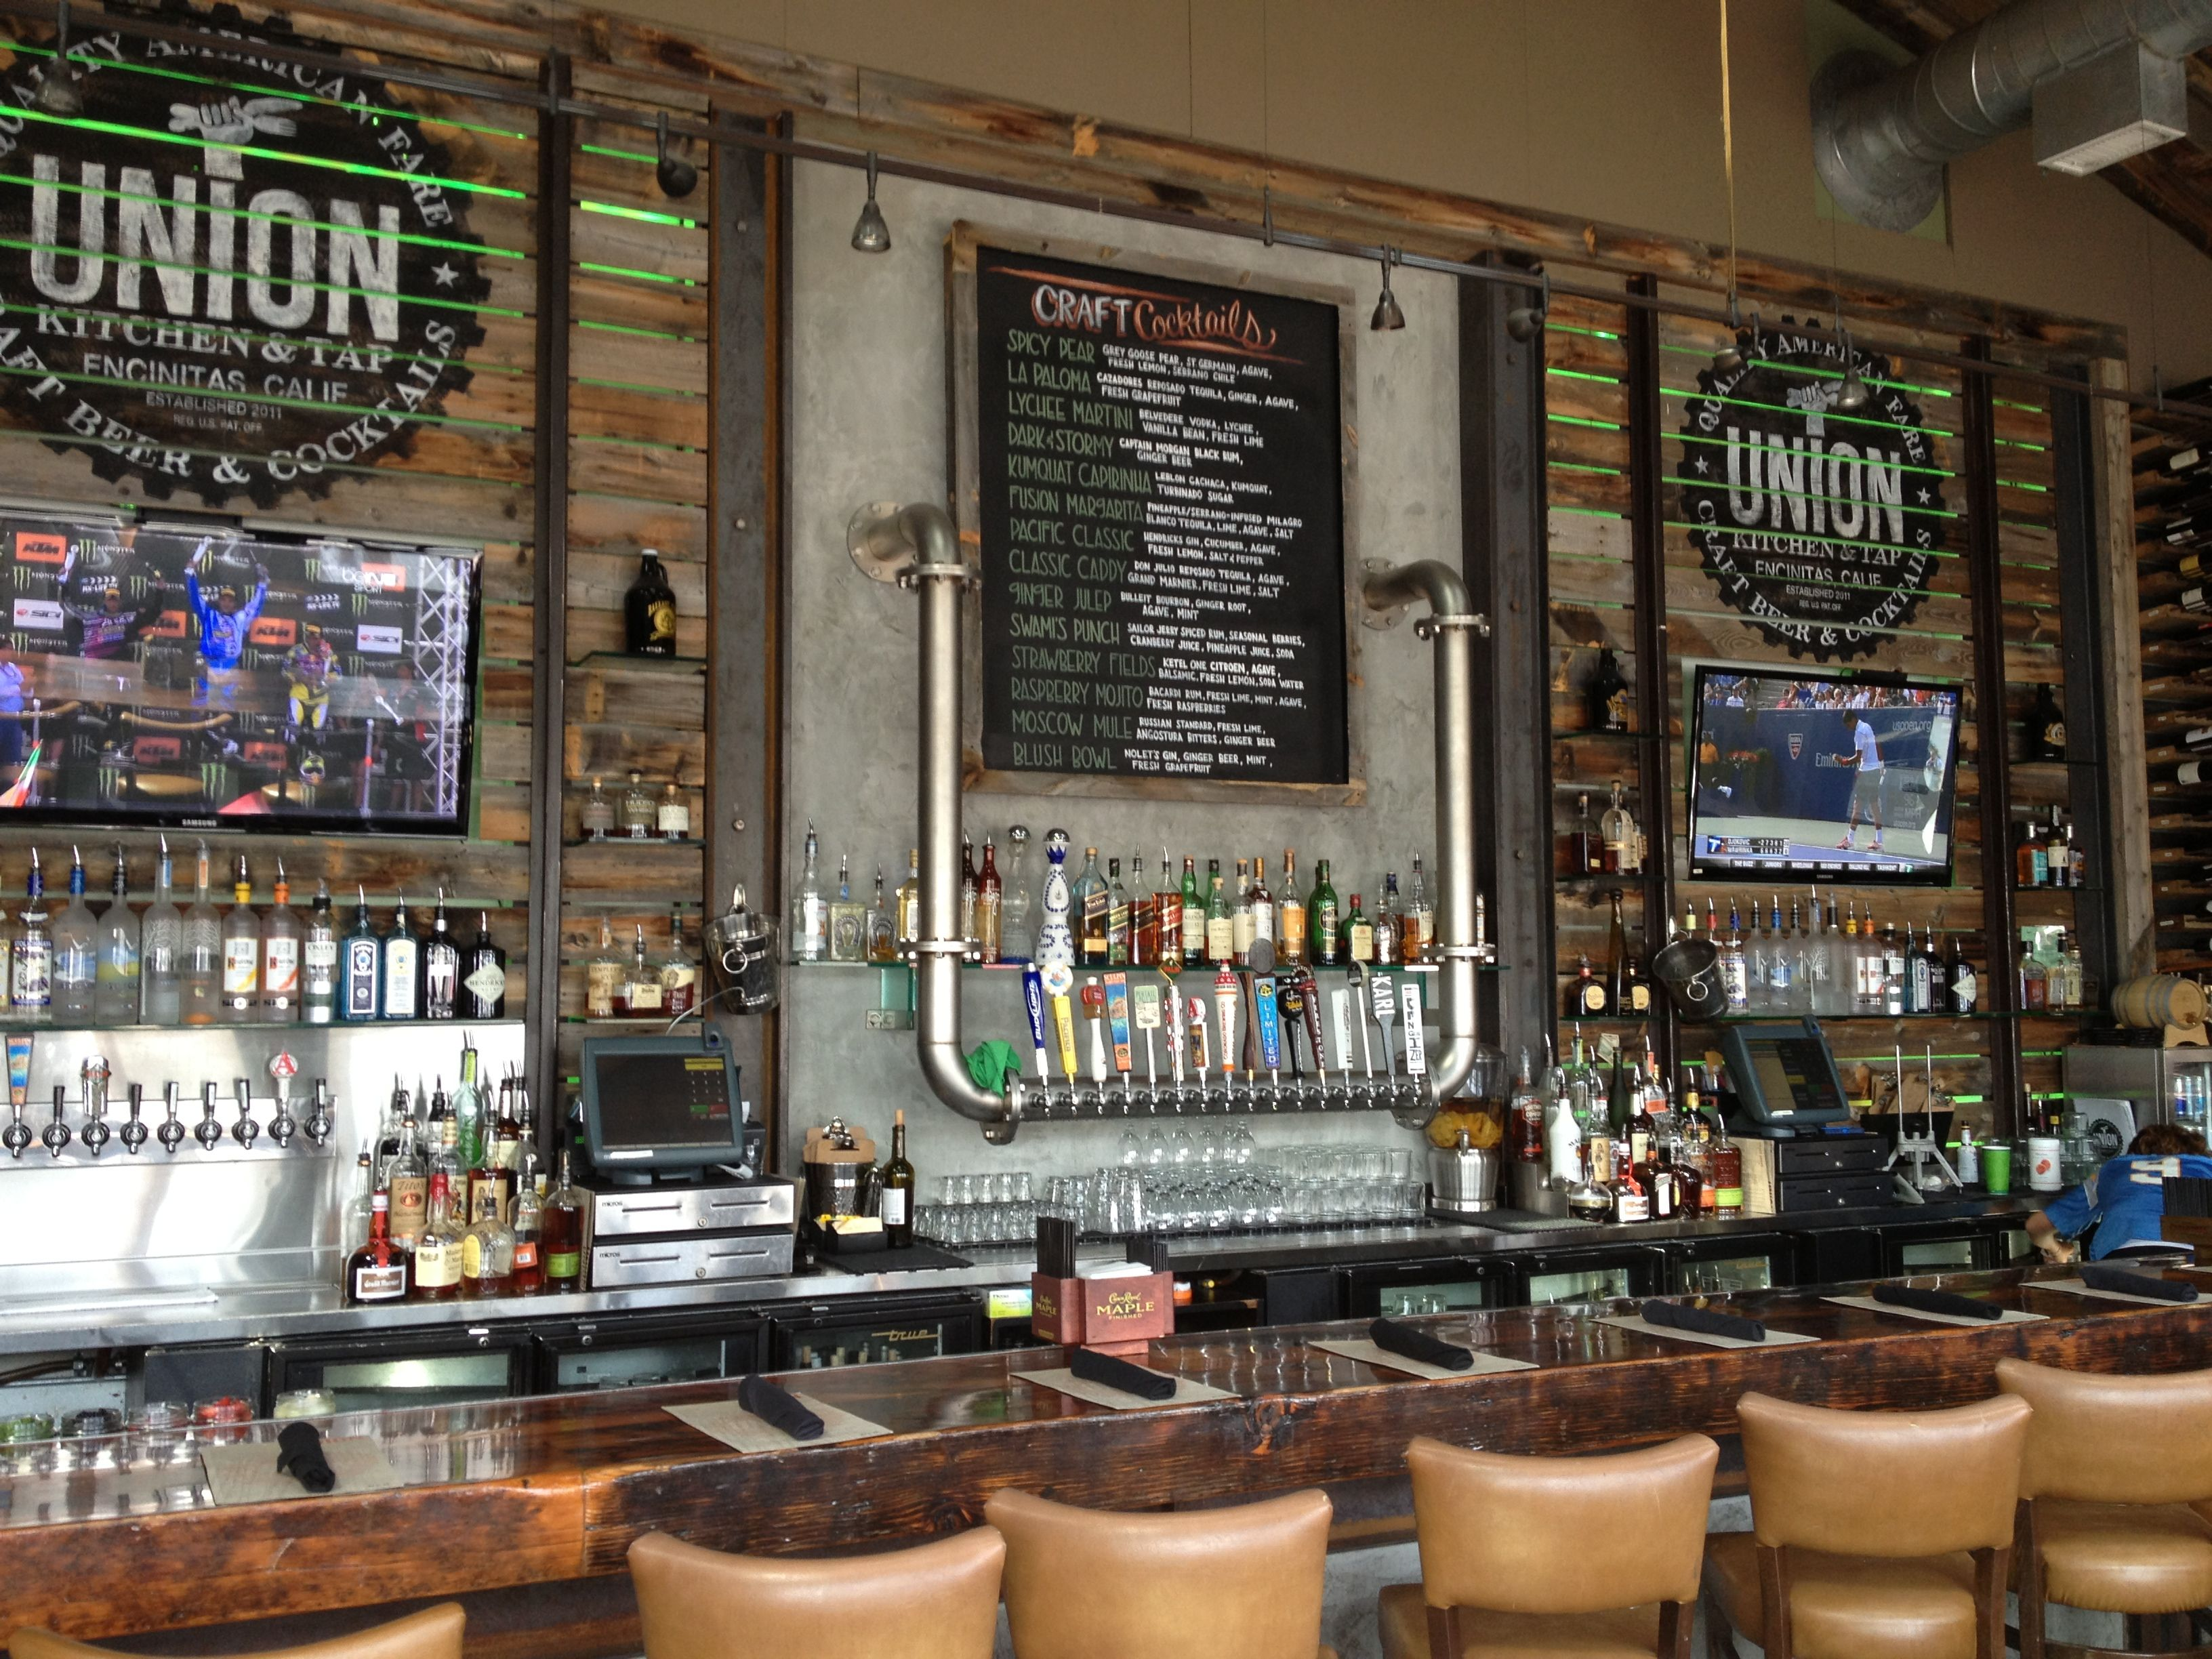 Union bar in encinitas great bar design client Lounge diner decorating ideas